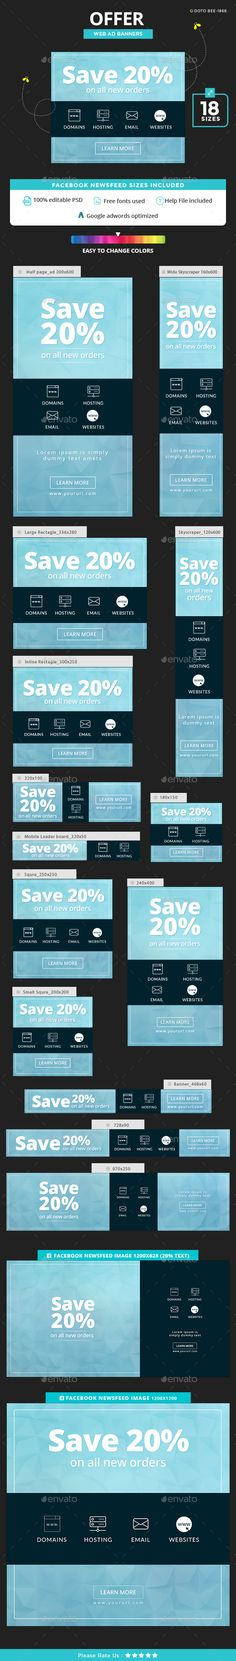 Offer Banners — Photoshop PSD #retargeting #social media • Available here → https://graphicriver.net/item/offer-banners/19257837?ref=pxcr